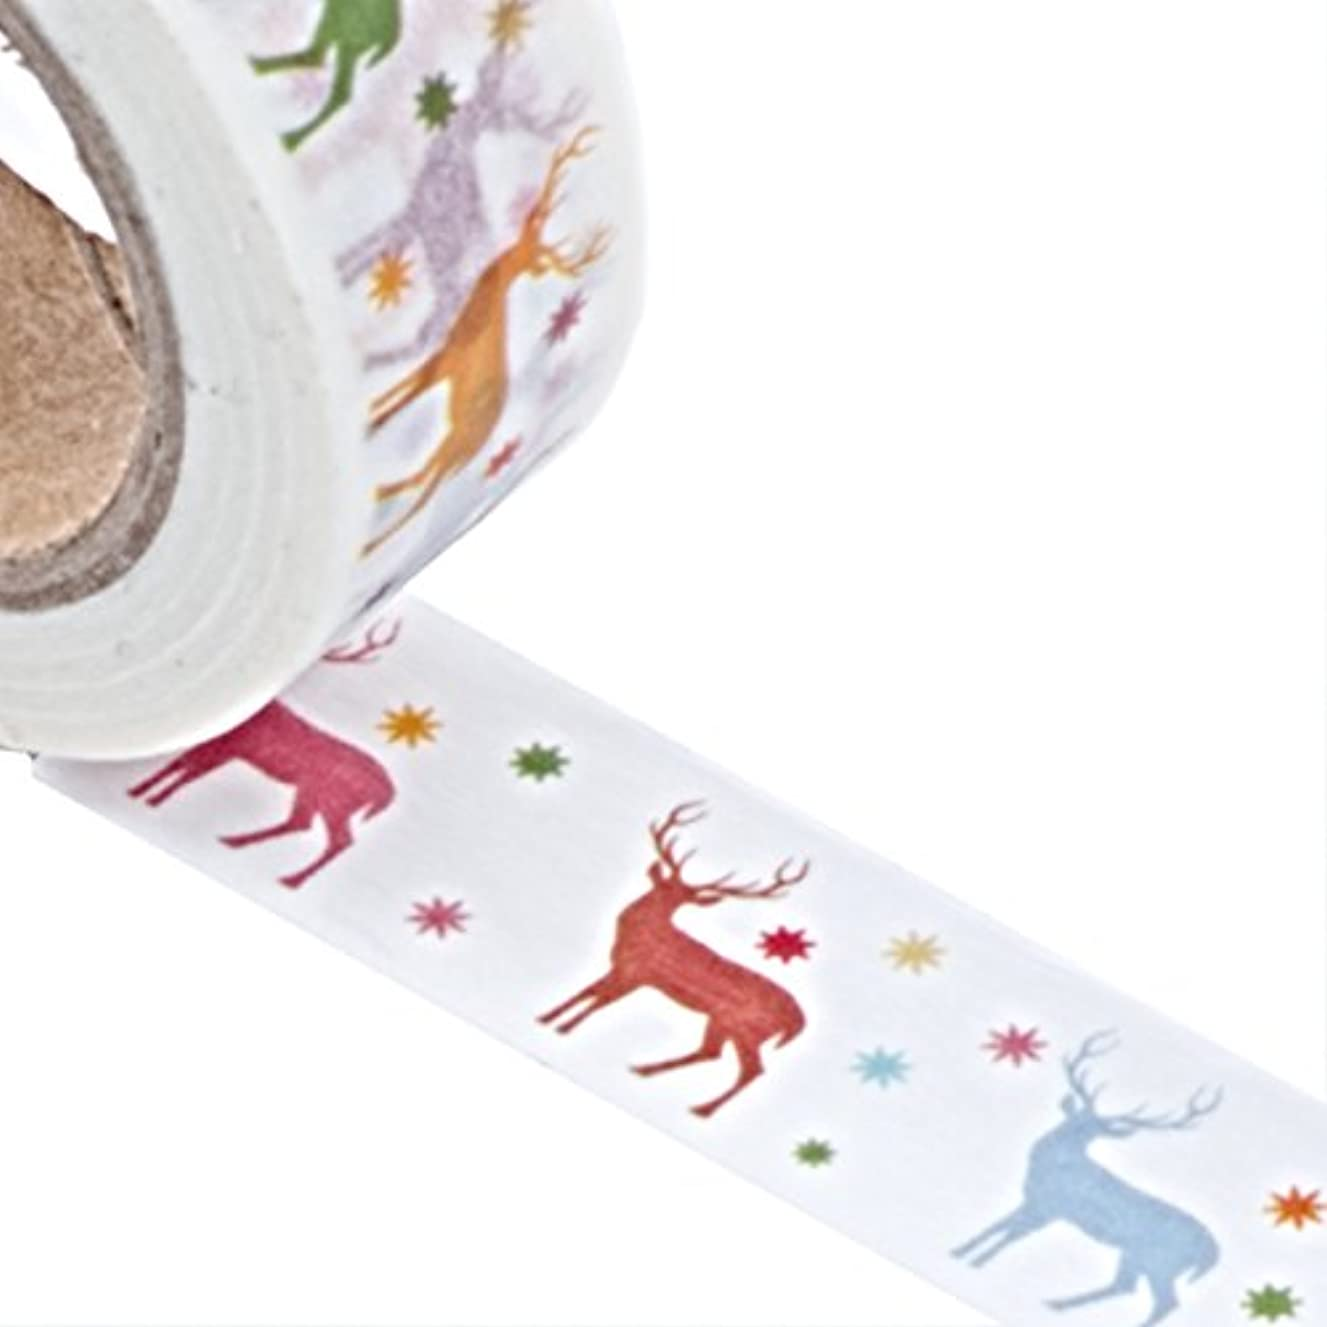 Deer in the Forest Washi Tape Roll 9/16 Inches x 10 Yards